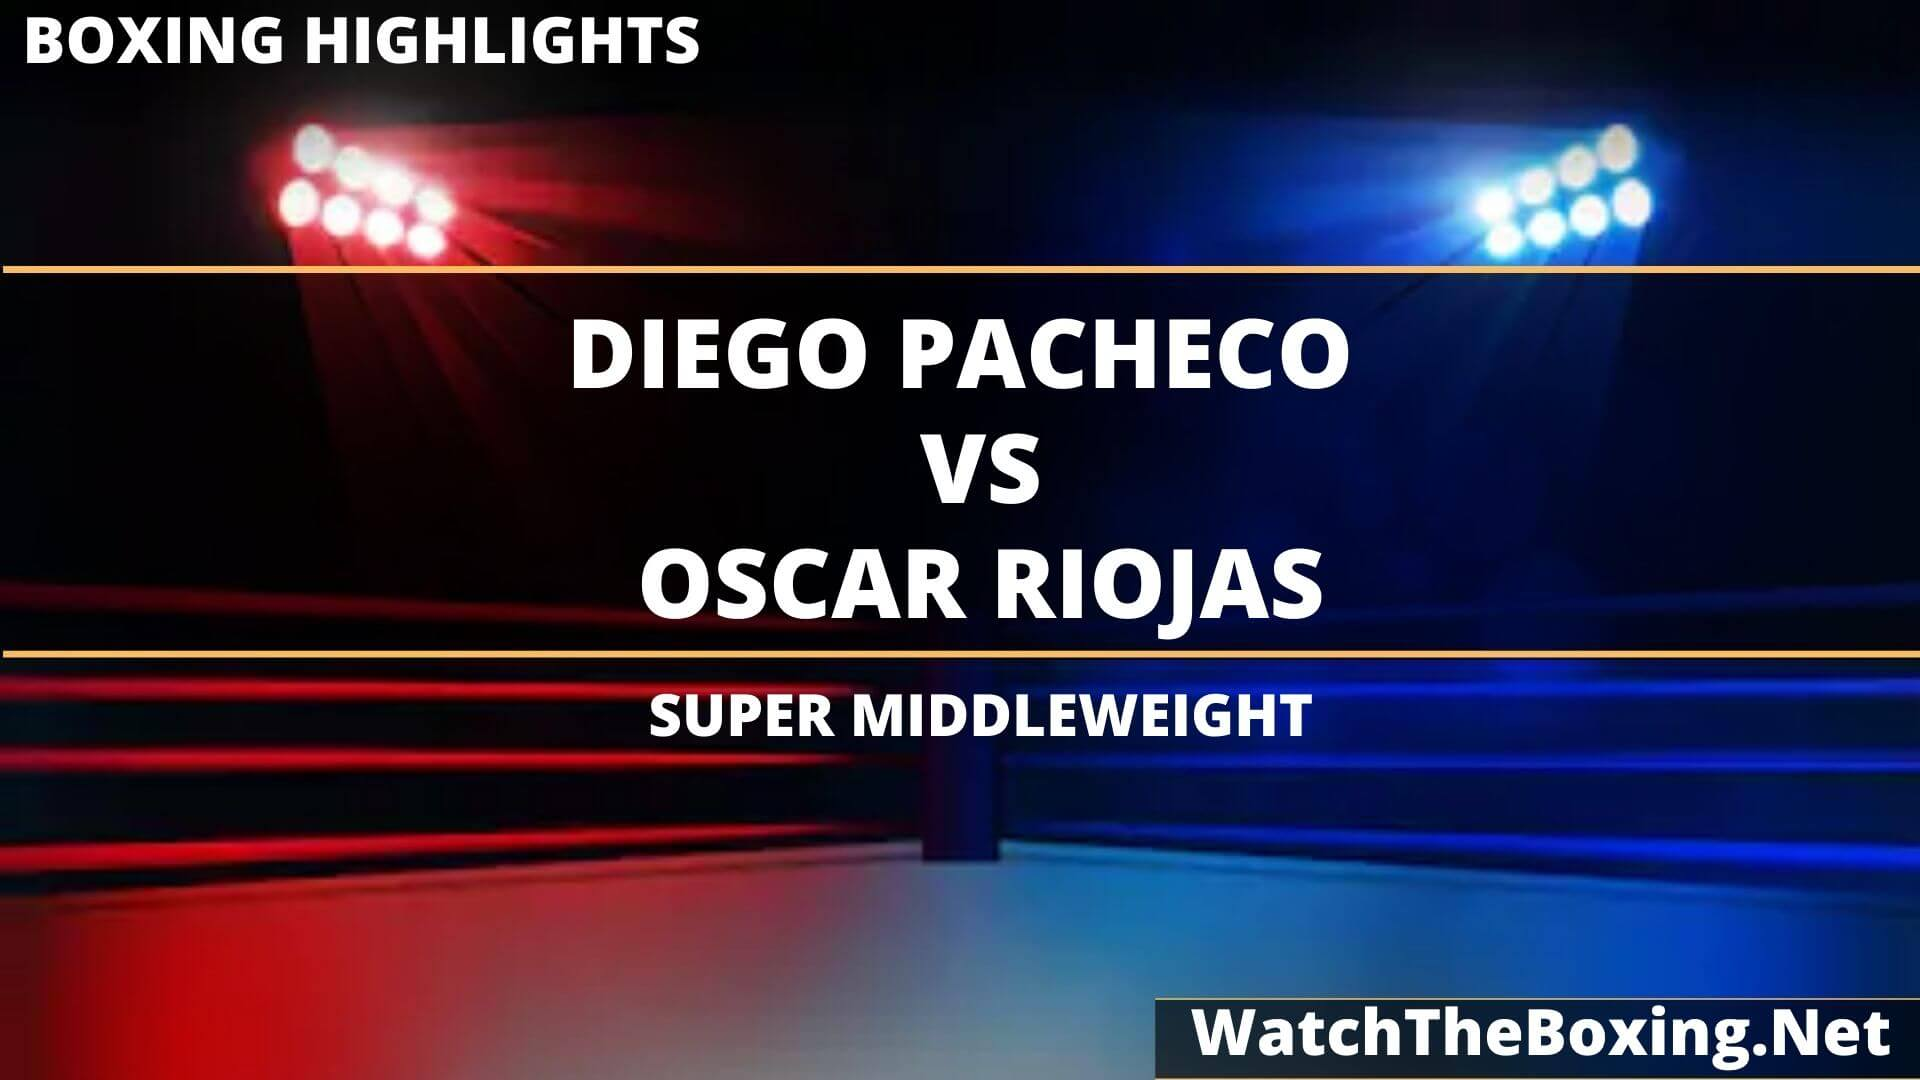 Diego Pacheco Vs Oscar Riojas Highlights 2020